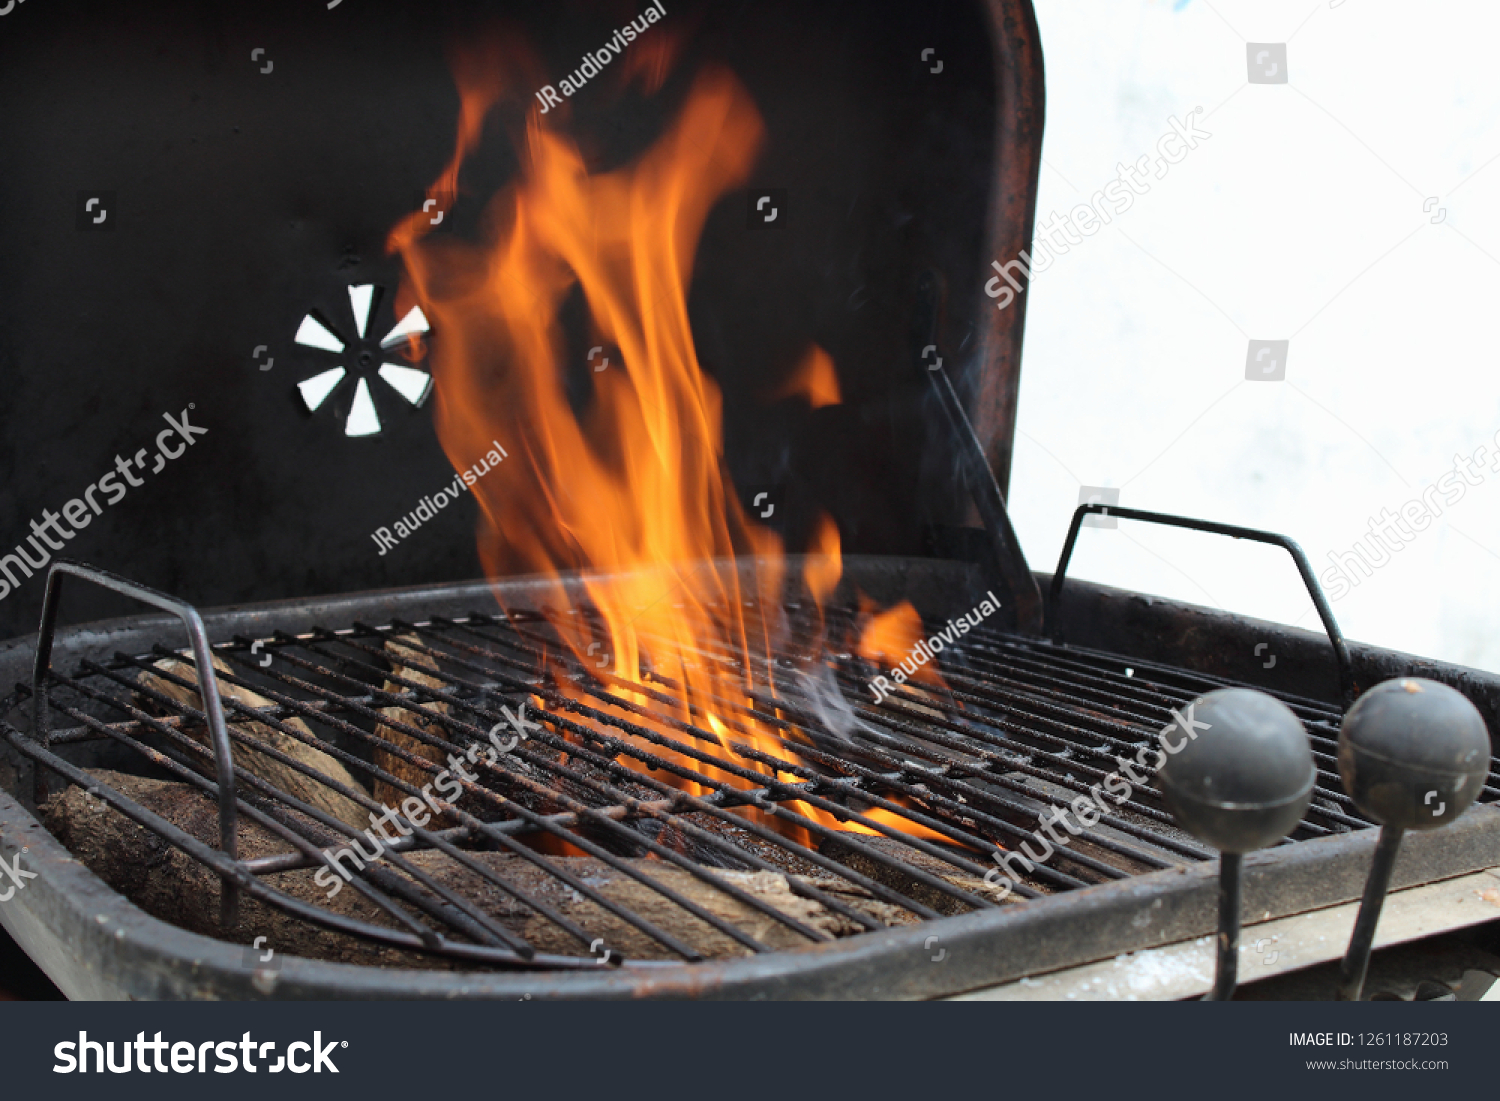 Charcoal Grill Roasting Smoking Meat During Stock Photo Edit Now 1261187203